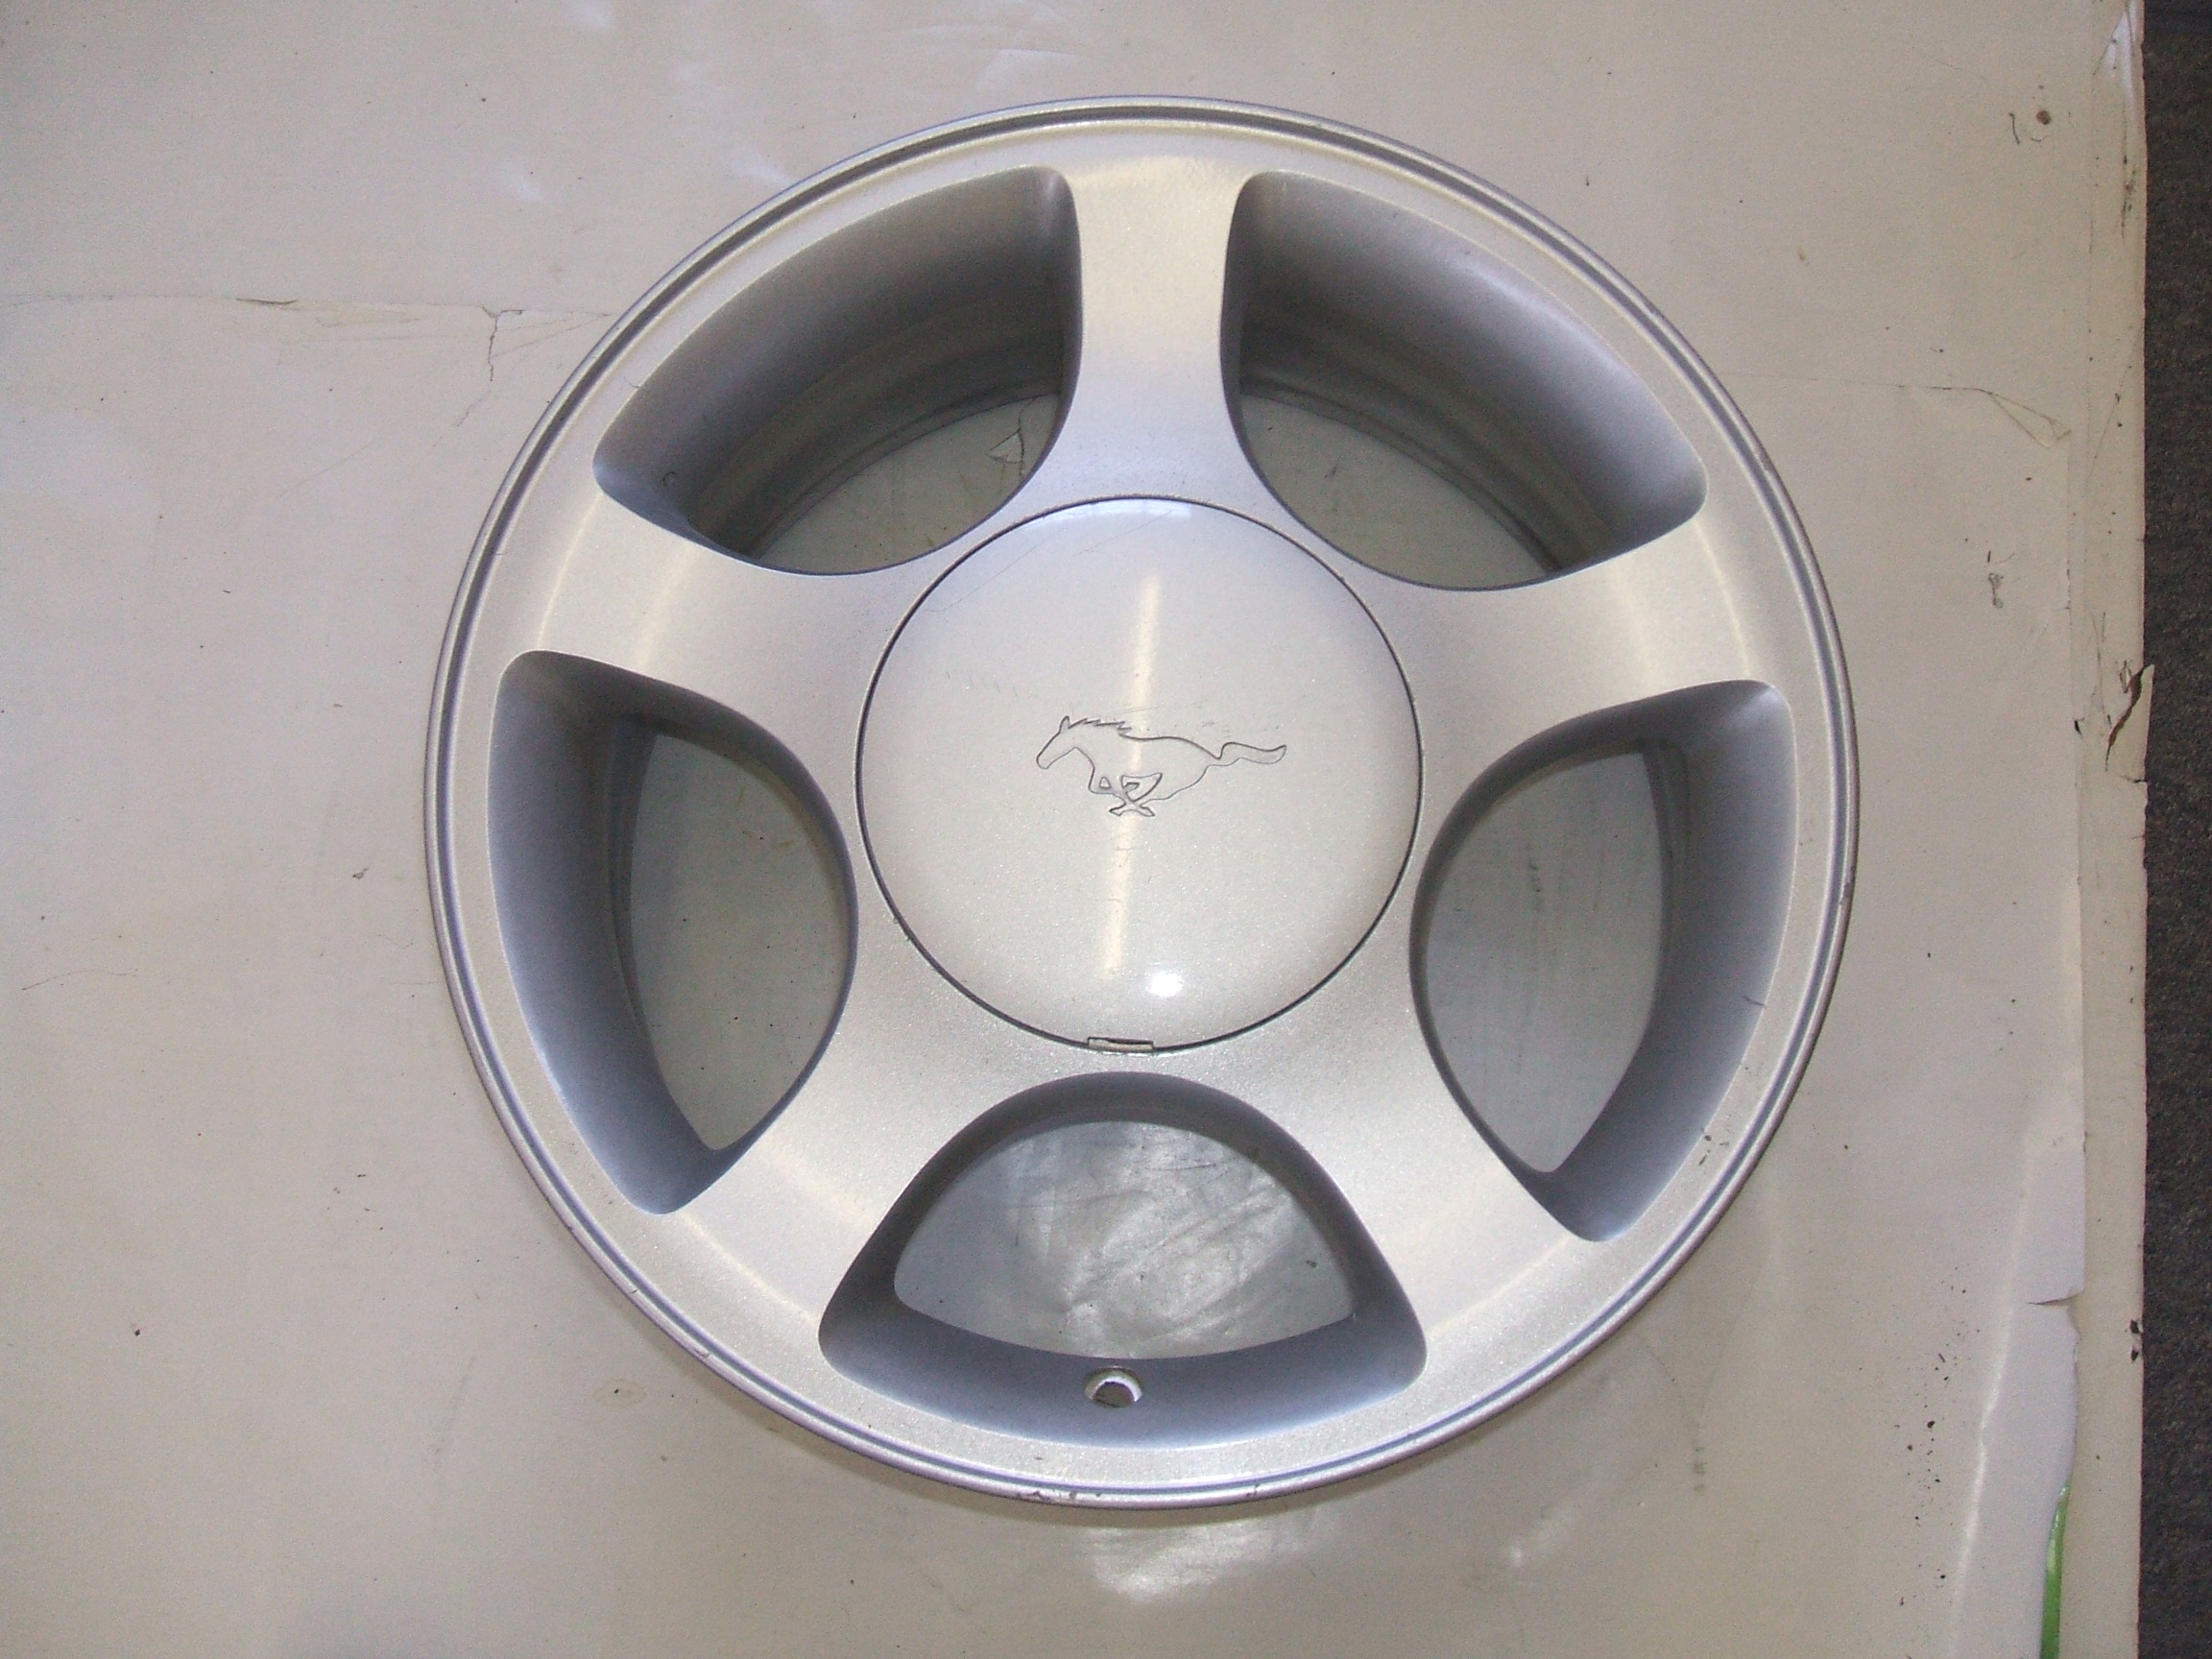 "Ford Mustang 99-00 16"" Wheel 3375 P/N XR33-1007-GA"